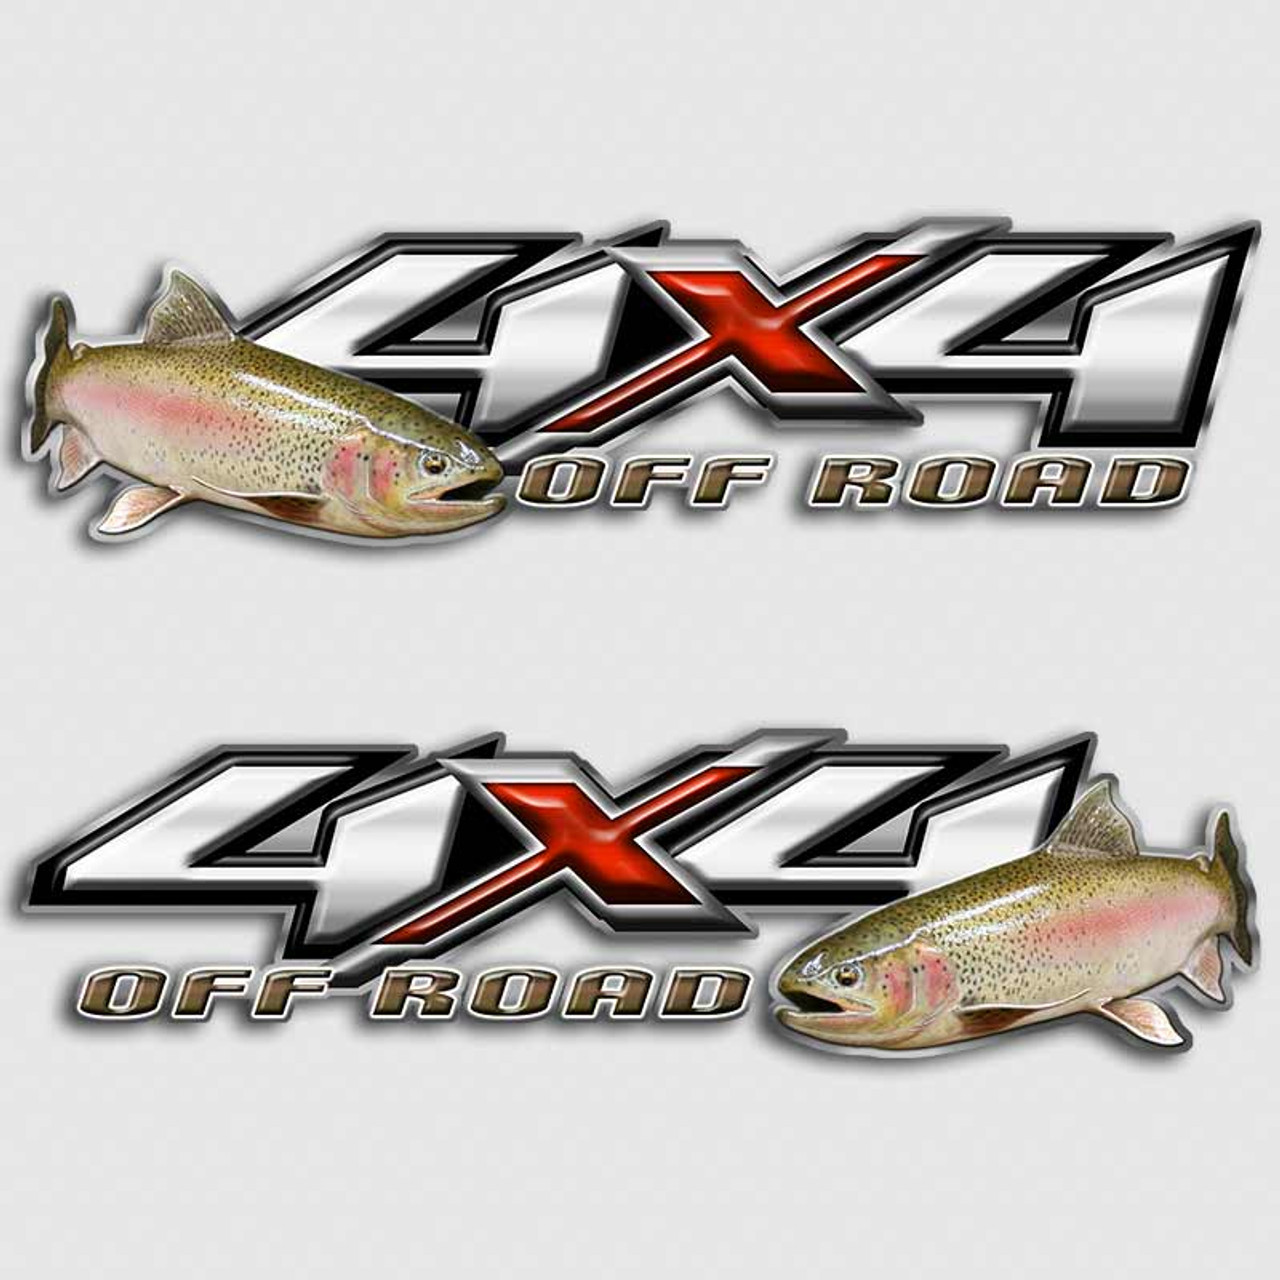 Rainbow Trout Fly Fishing X Chevy Silverado Truck Decals - 4x4 truck decals